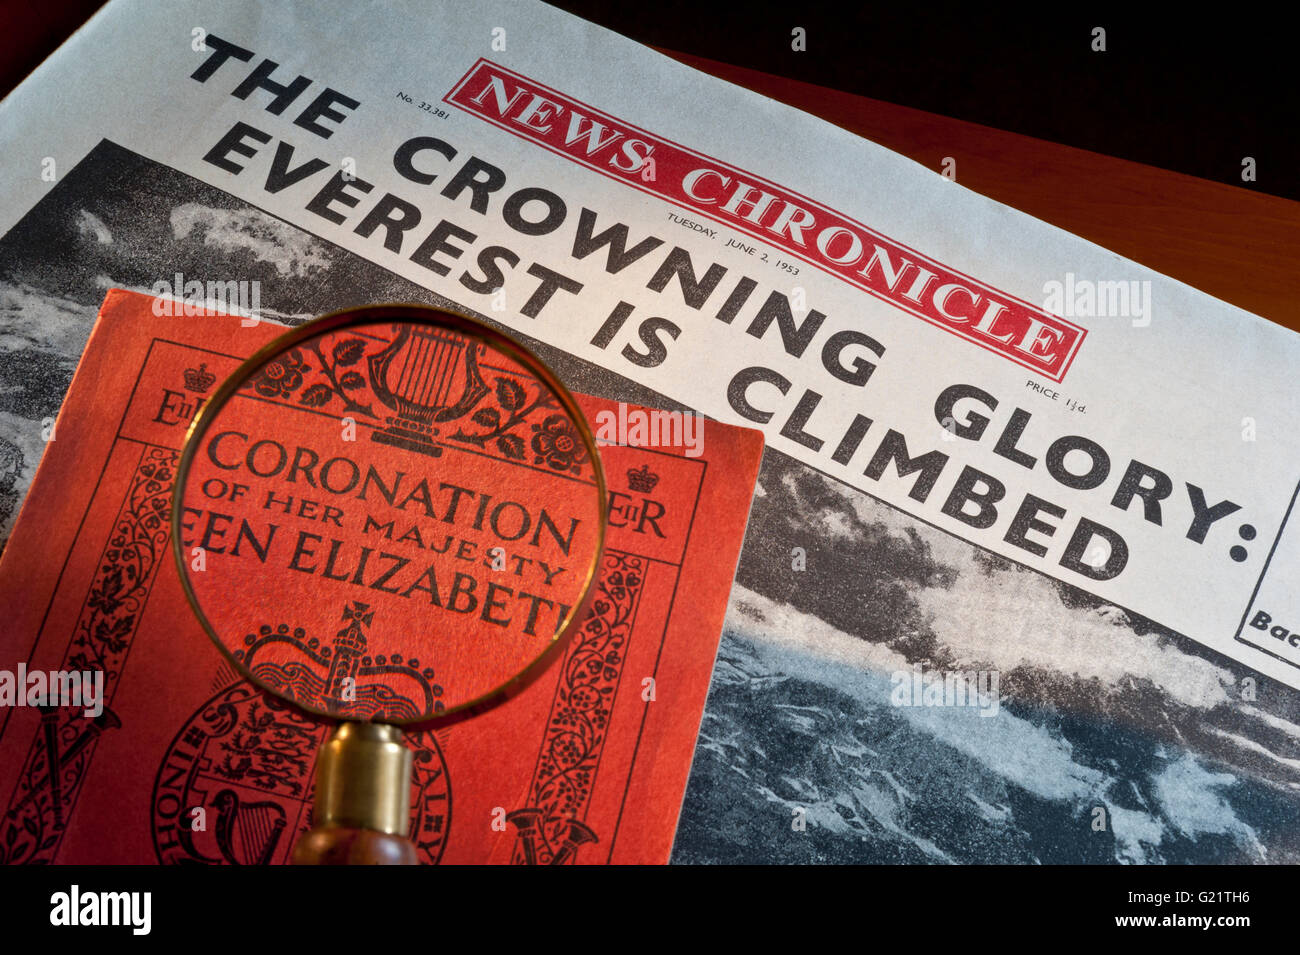 June 2nd 1953 Newspaper headline Everest climbed and Queen Elizabeth 2nd Coronation service book both on same day - Stock Image